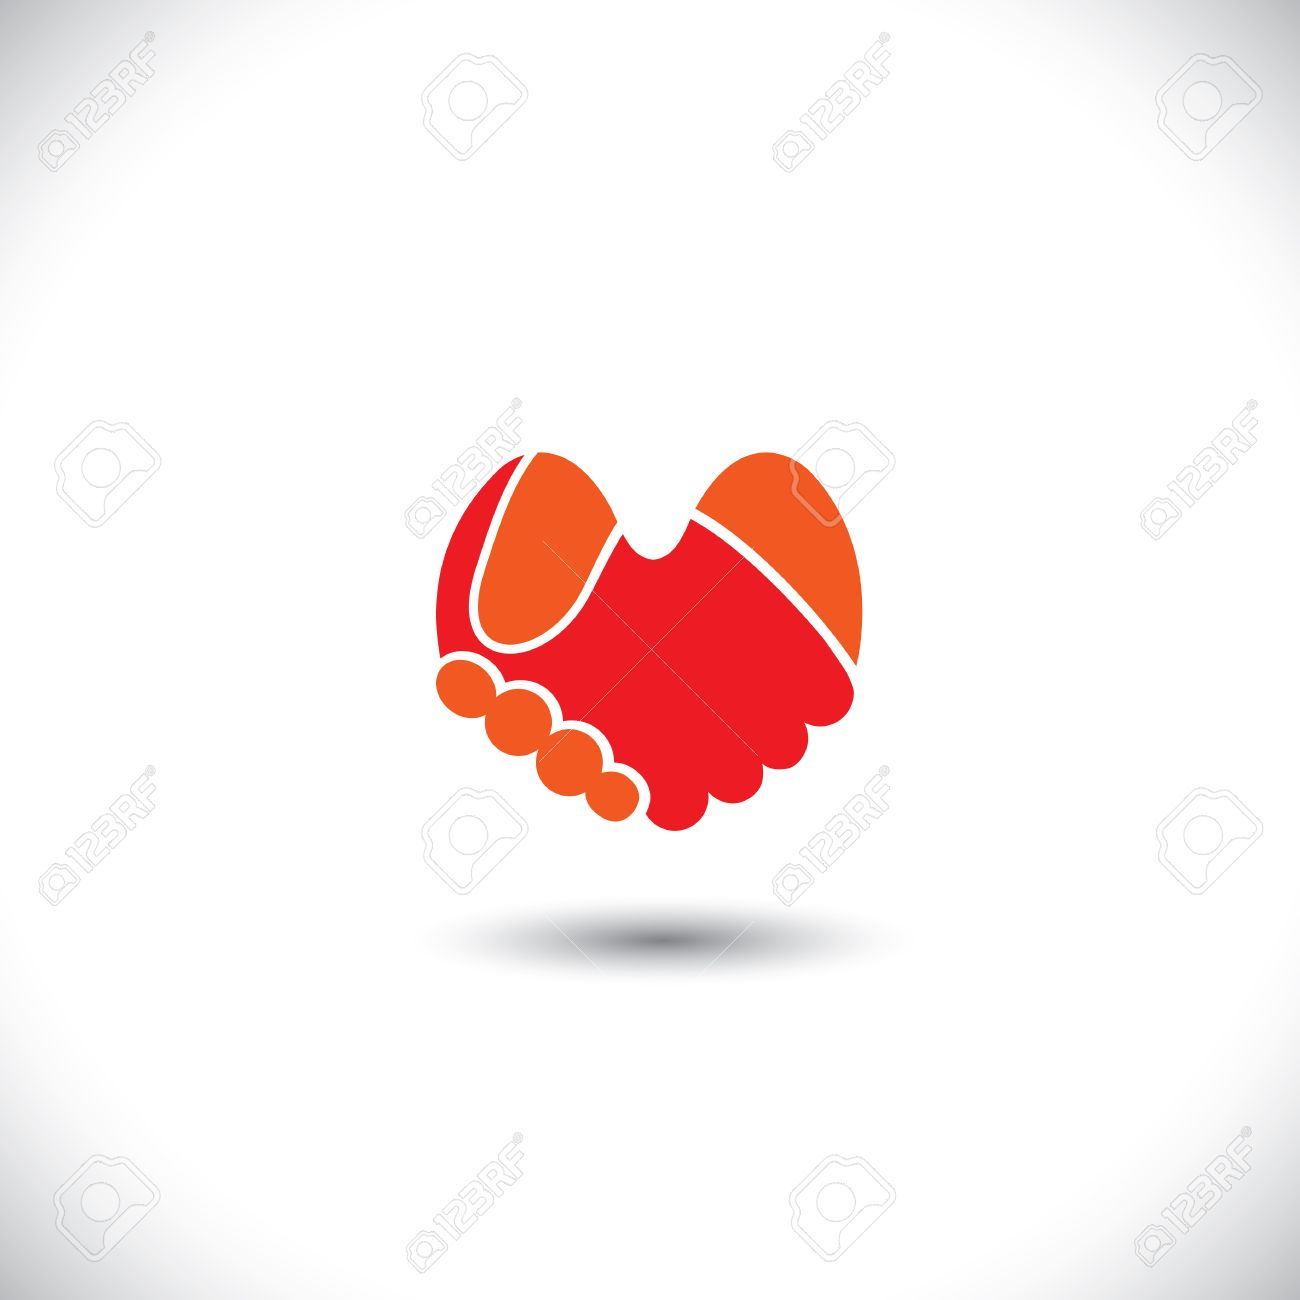 Love Vector - Heart Shaped Handshake Icon Of Boy & Girl. This ...